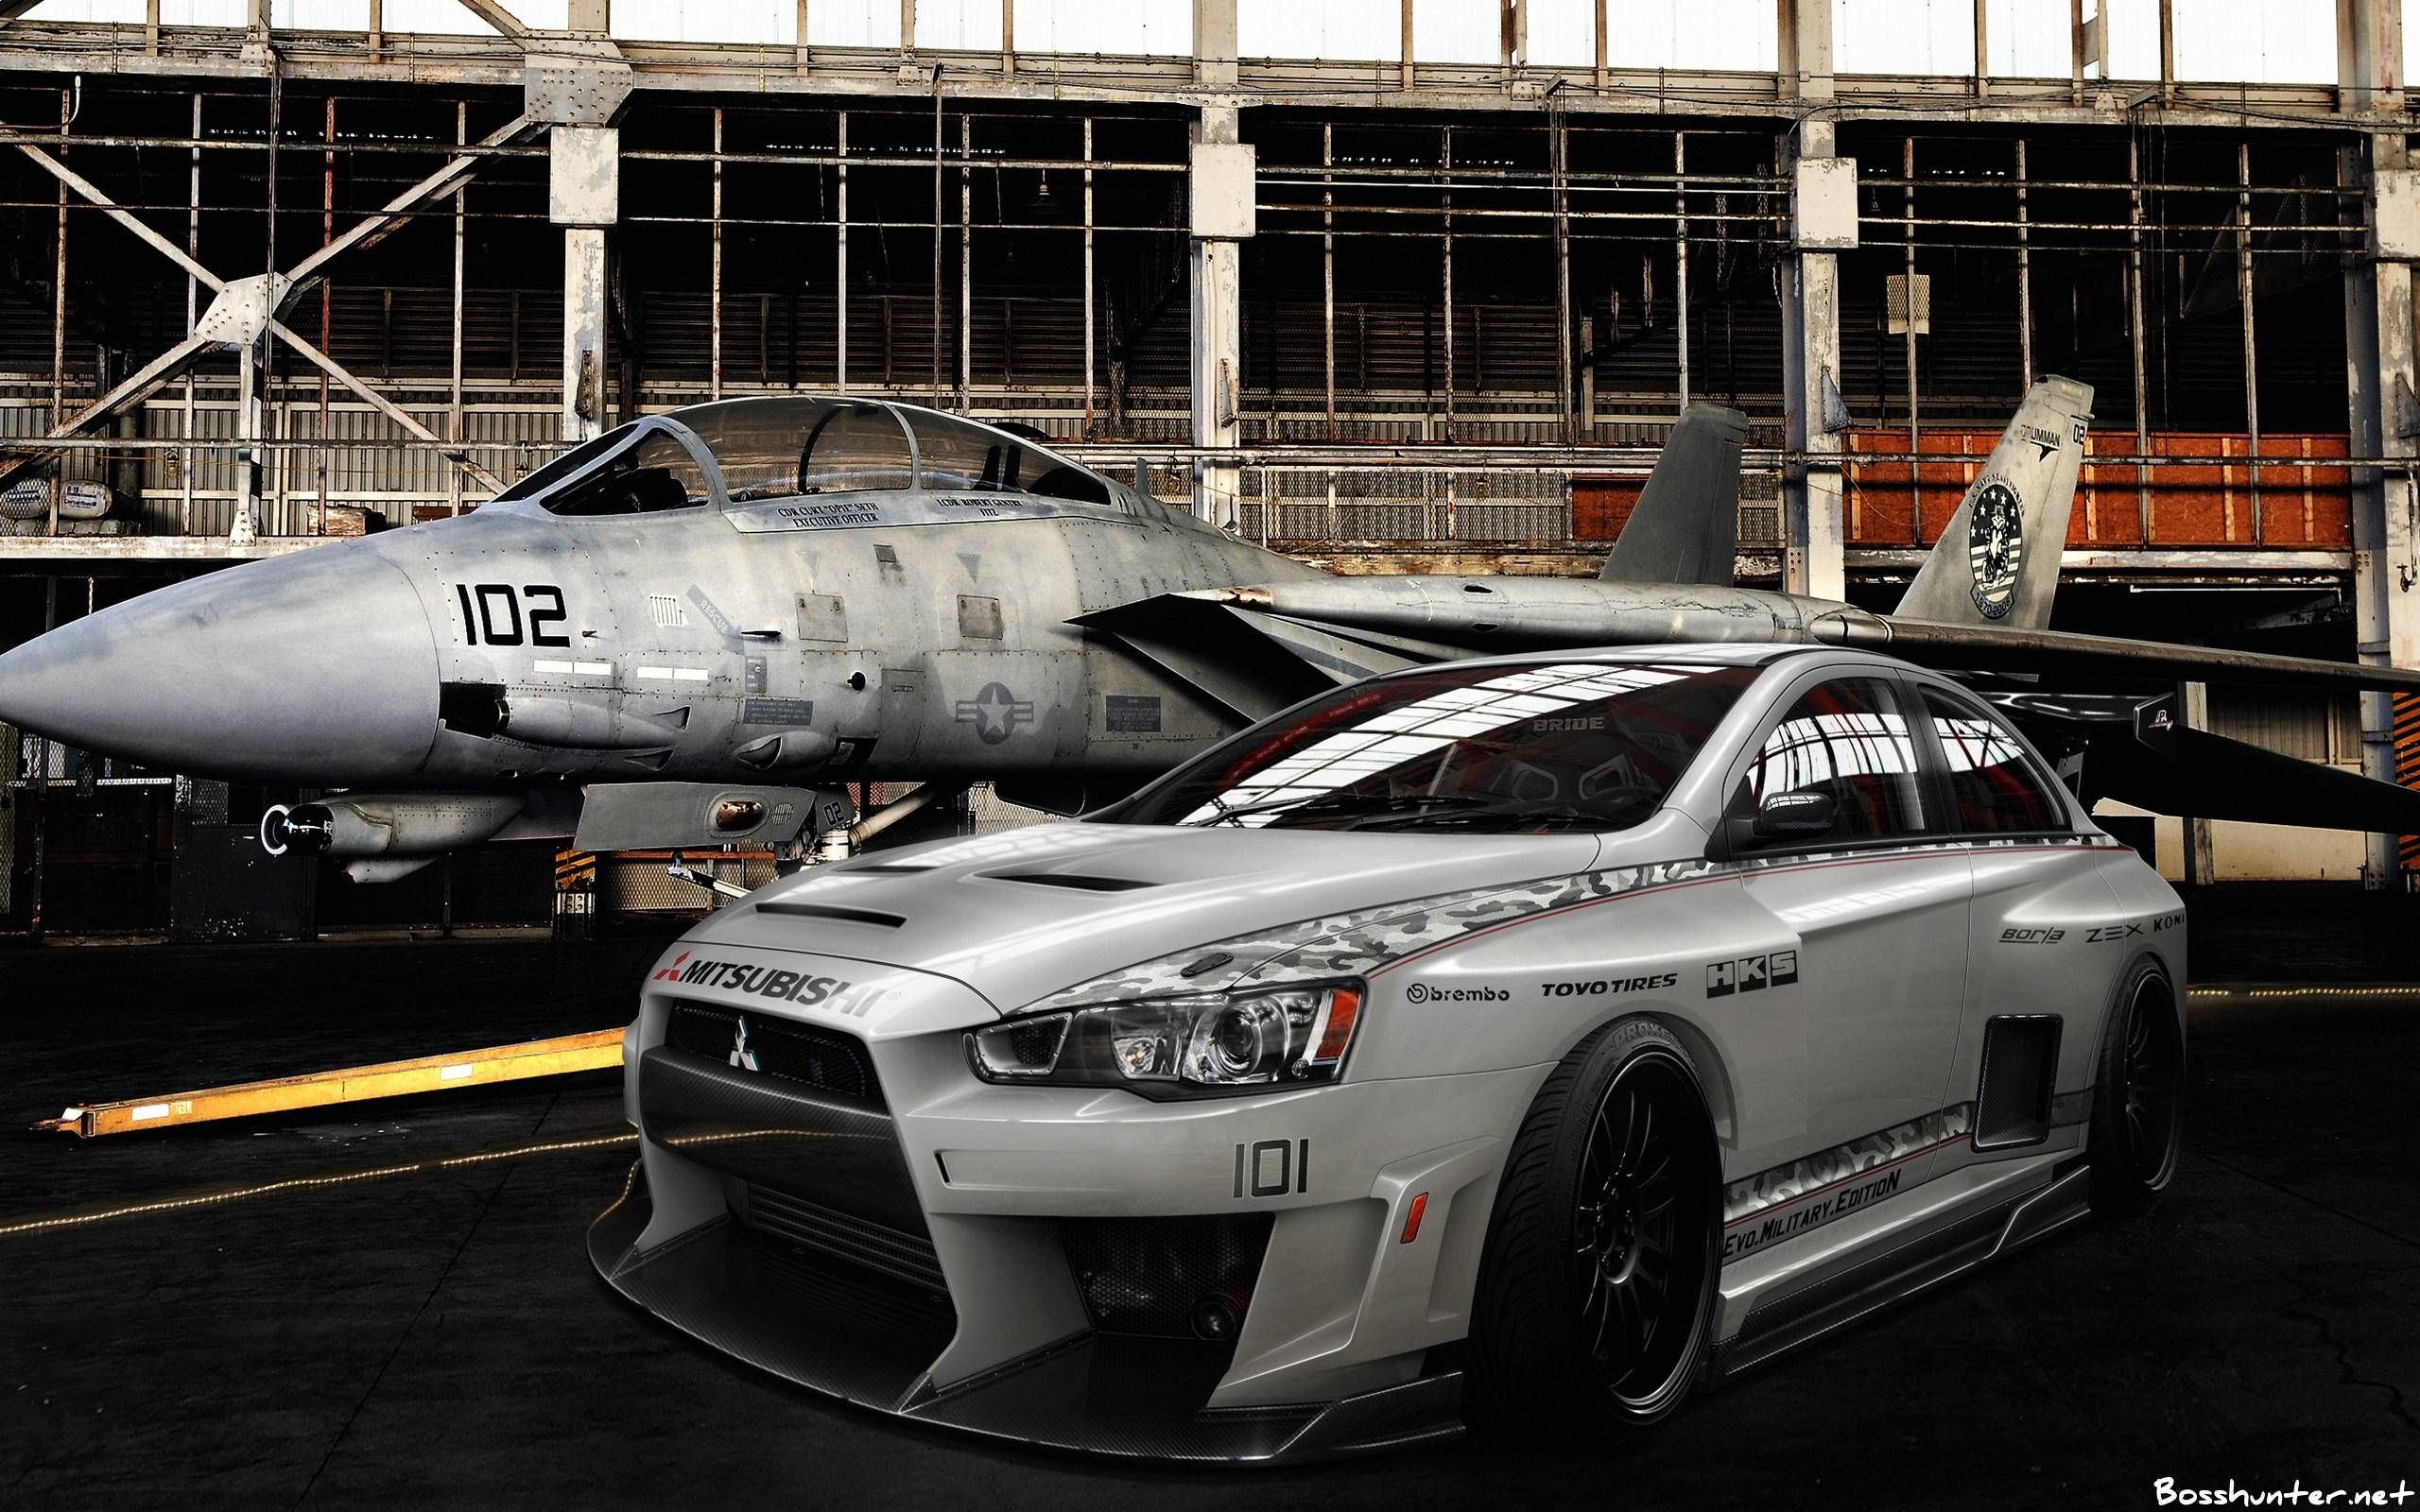 lancer evo x wallpapers - wallpaper cave | images wallpapers